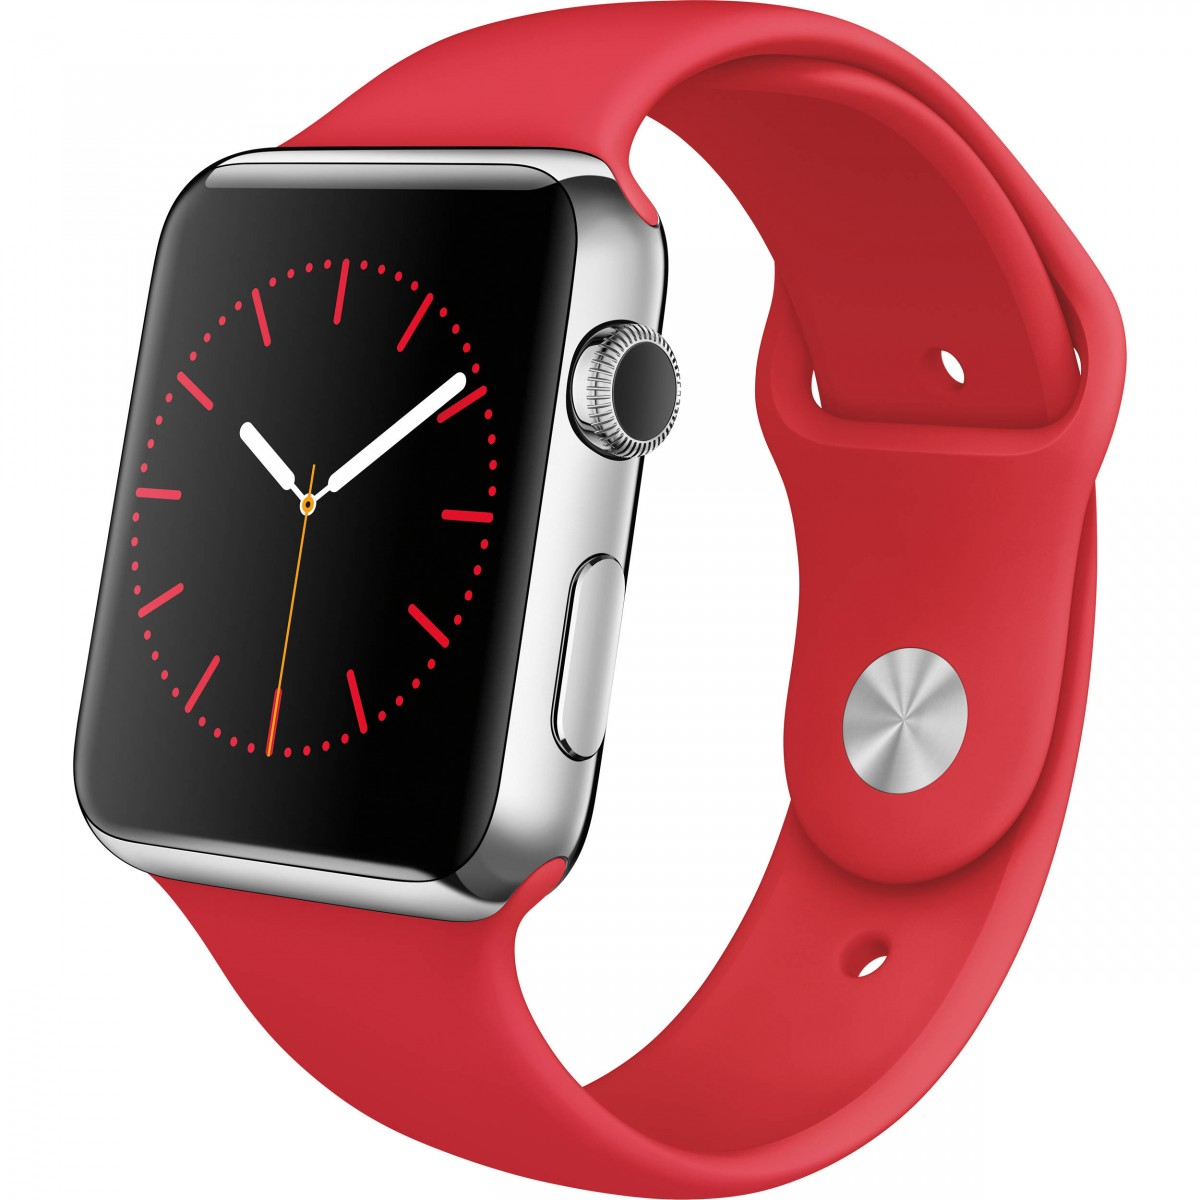 Řemínek SmoothBand pro Apple Watch Series 4 (44mm) - Červený 72e2fe3590f